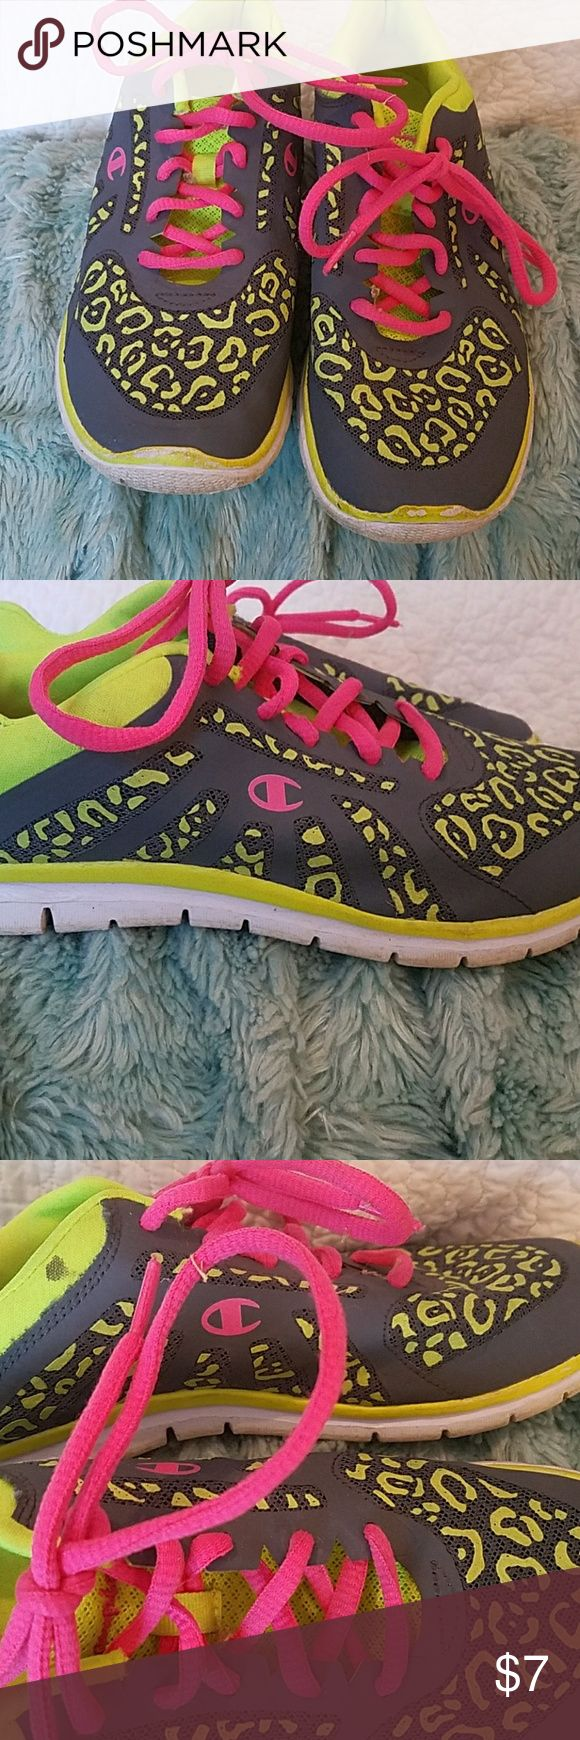 Super bright Champion shoes still great condition! Super bright Champion shoes still great condition! Just a little cleaning not much.  Lite weight and breathable shoes.  Says 4.5 but fits like a 5. Champion Shoes